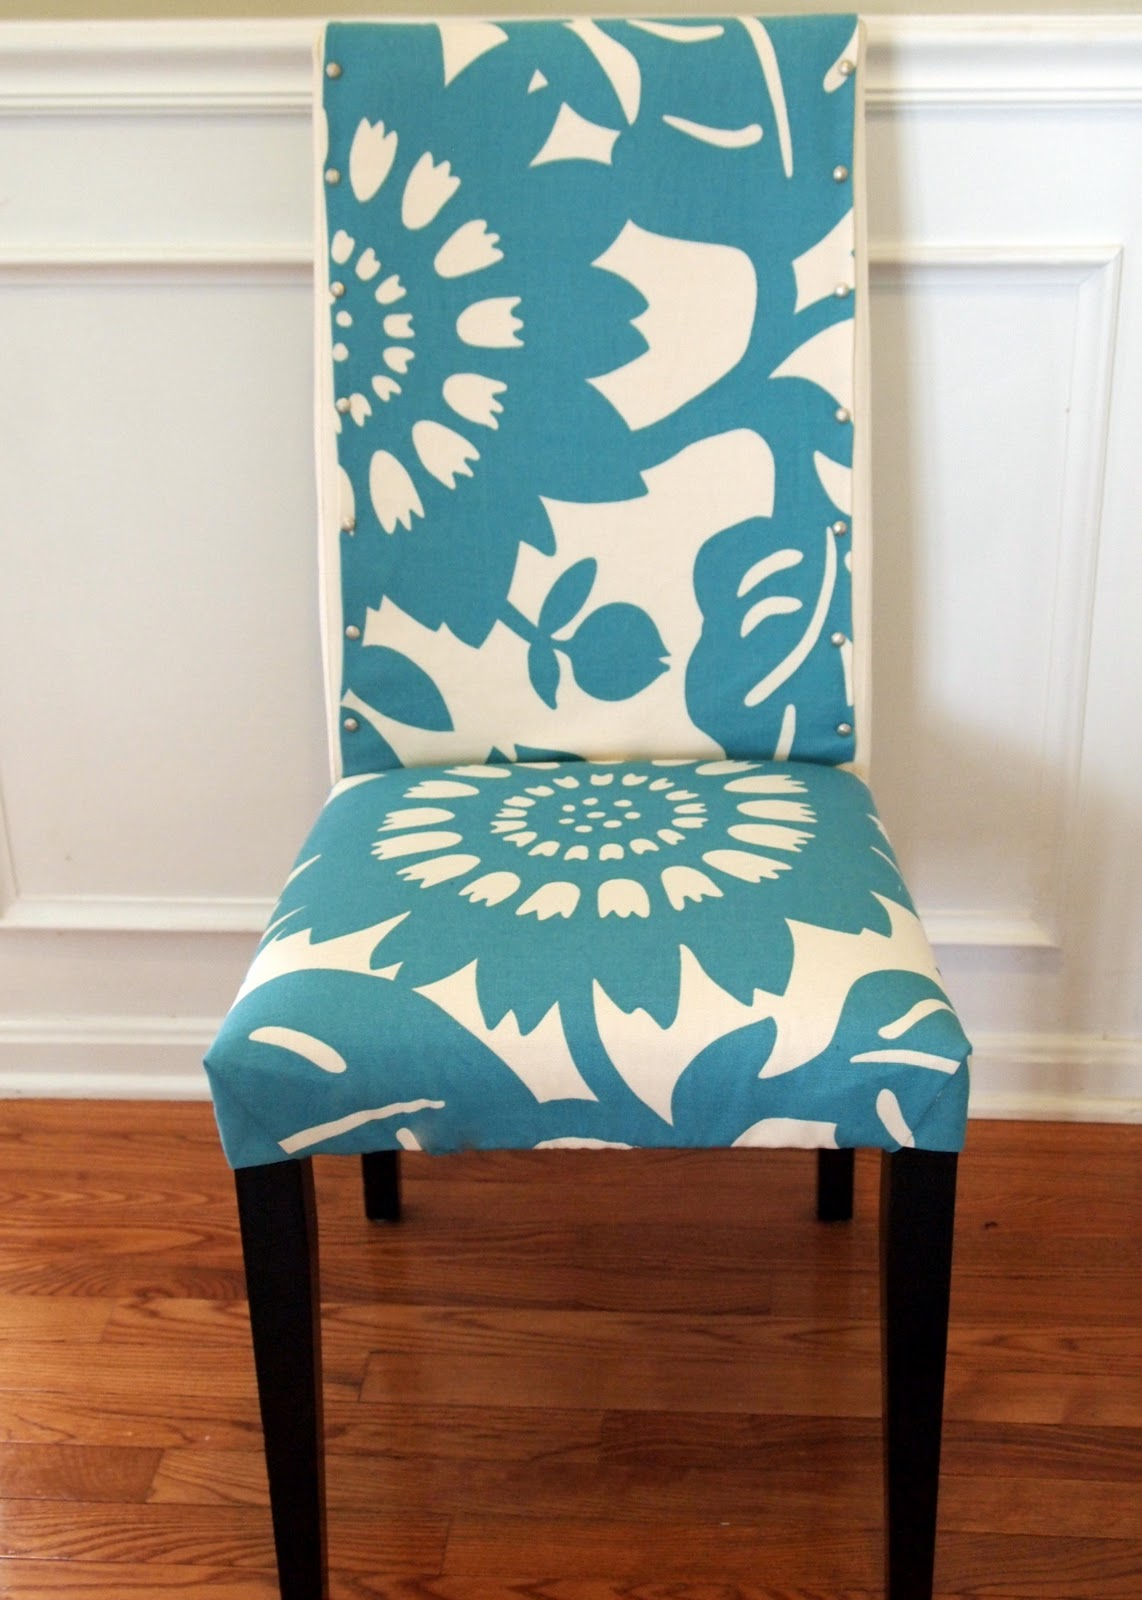 Slip Cover Chairs Loveyourroom My Morning Slip Cover Chair Project Using